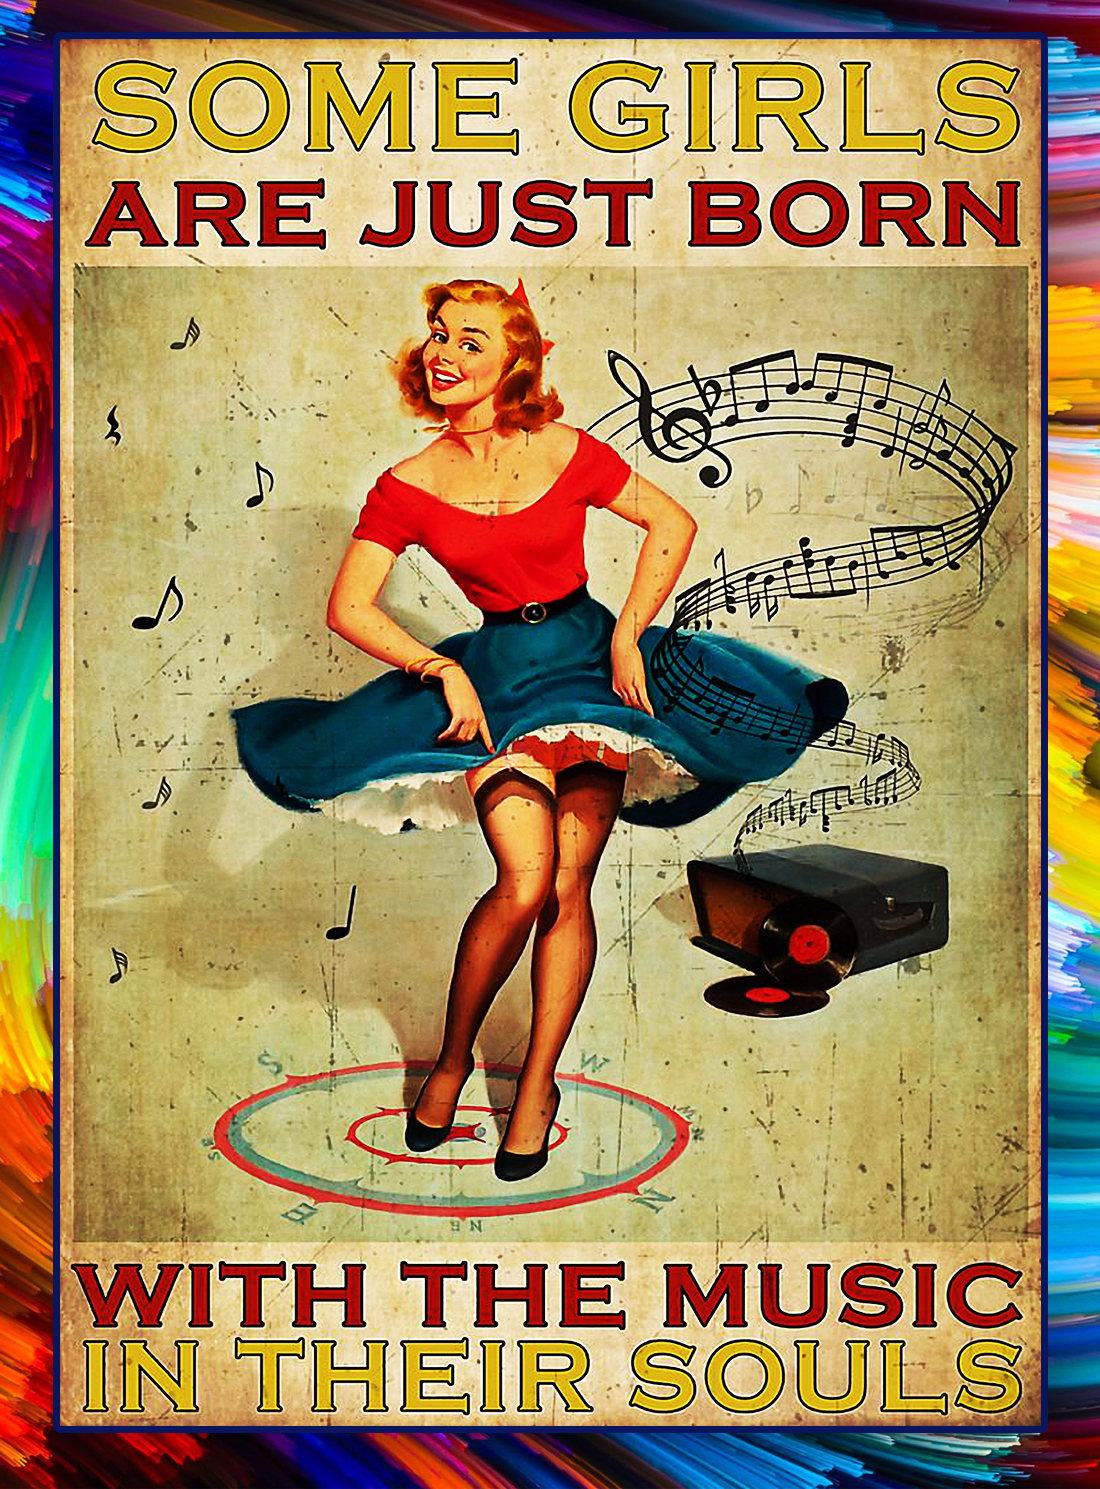 Some girls are just born with the music in their souls poster - A4